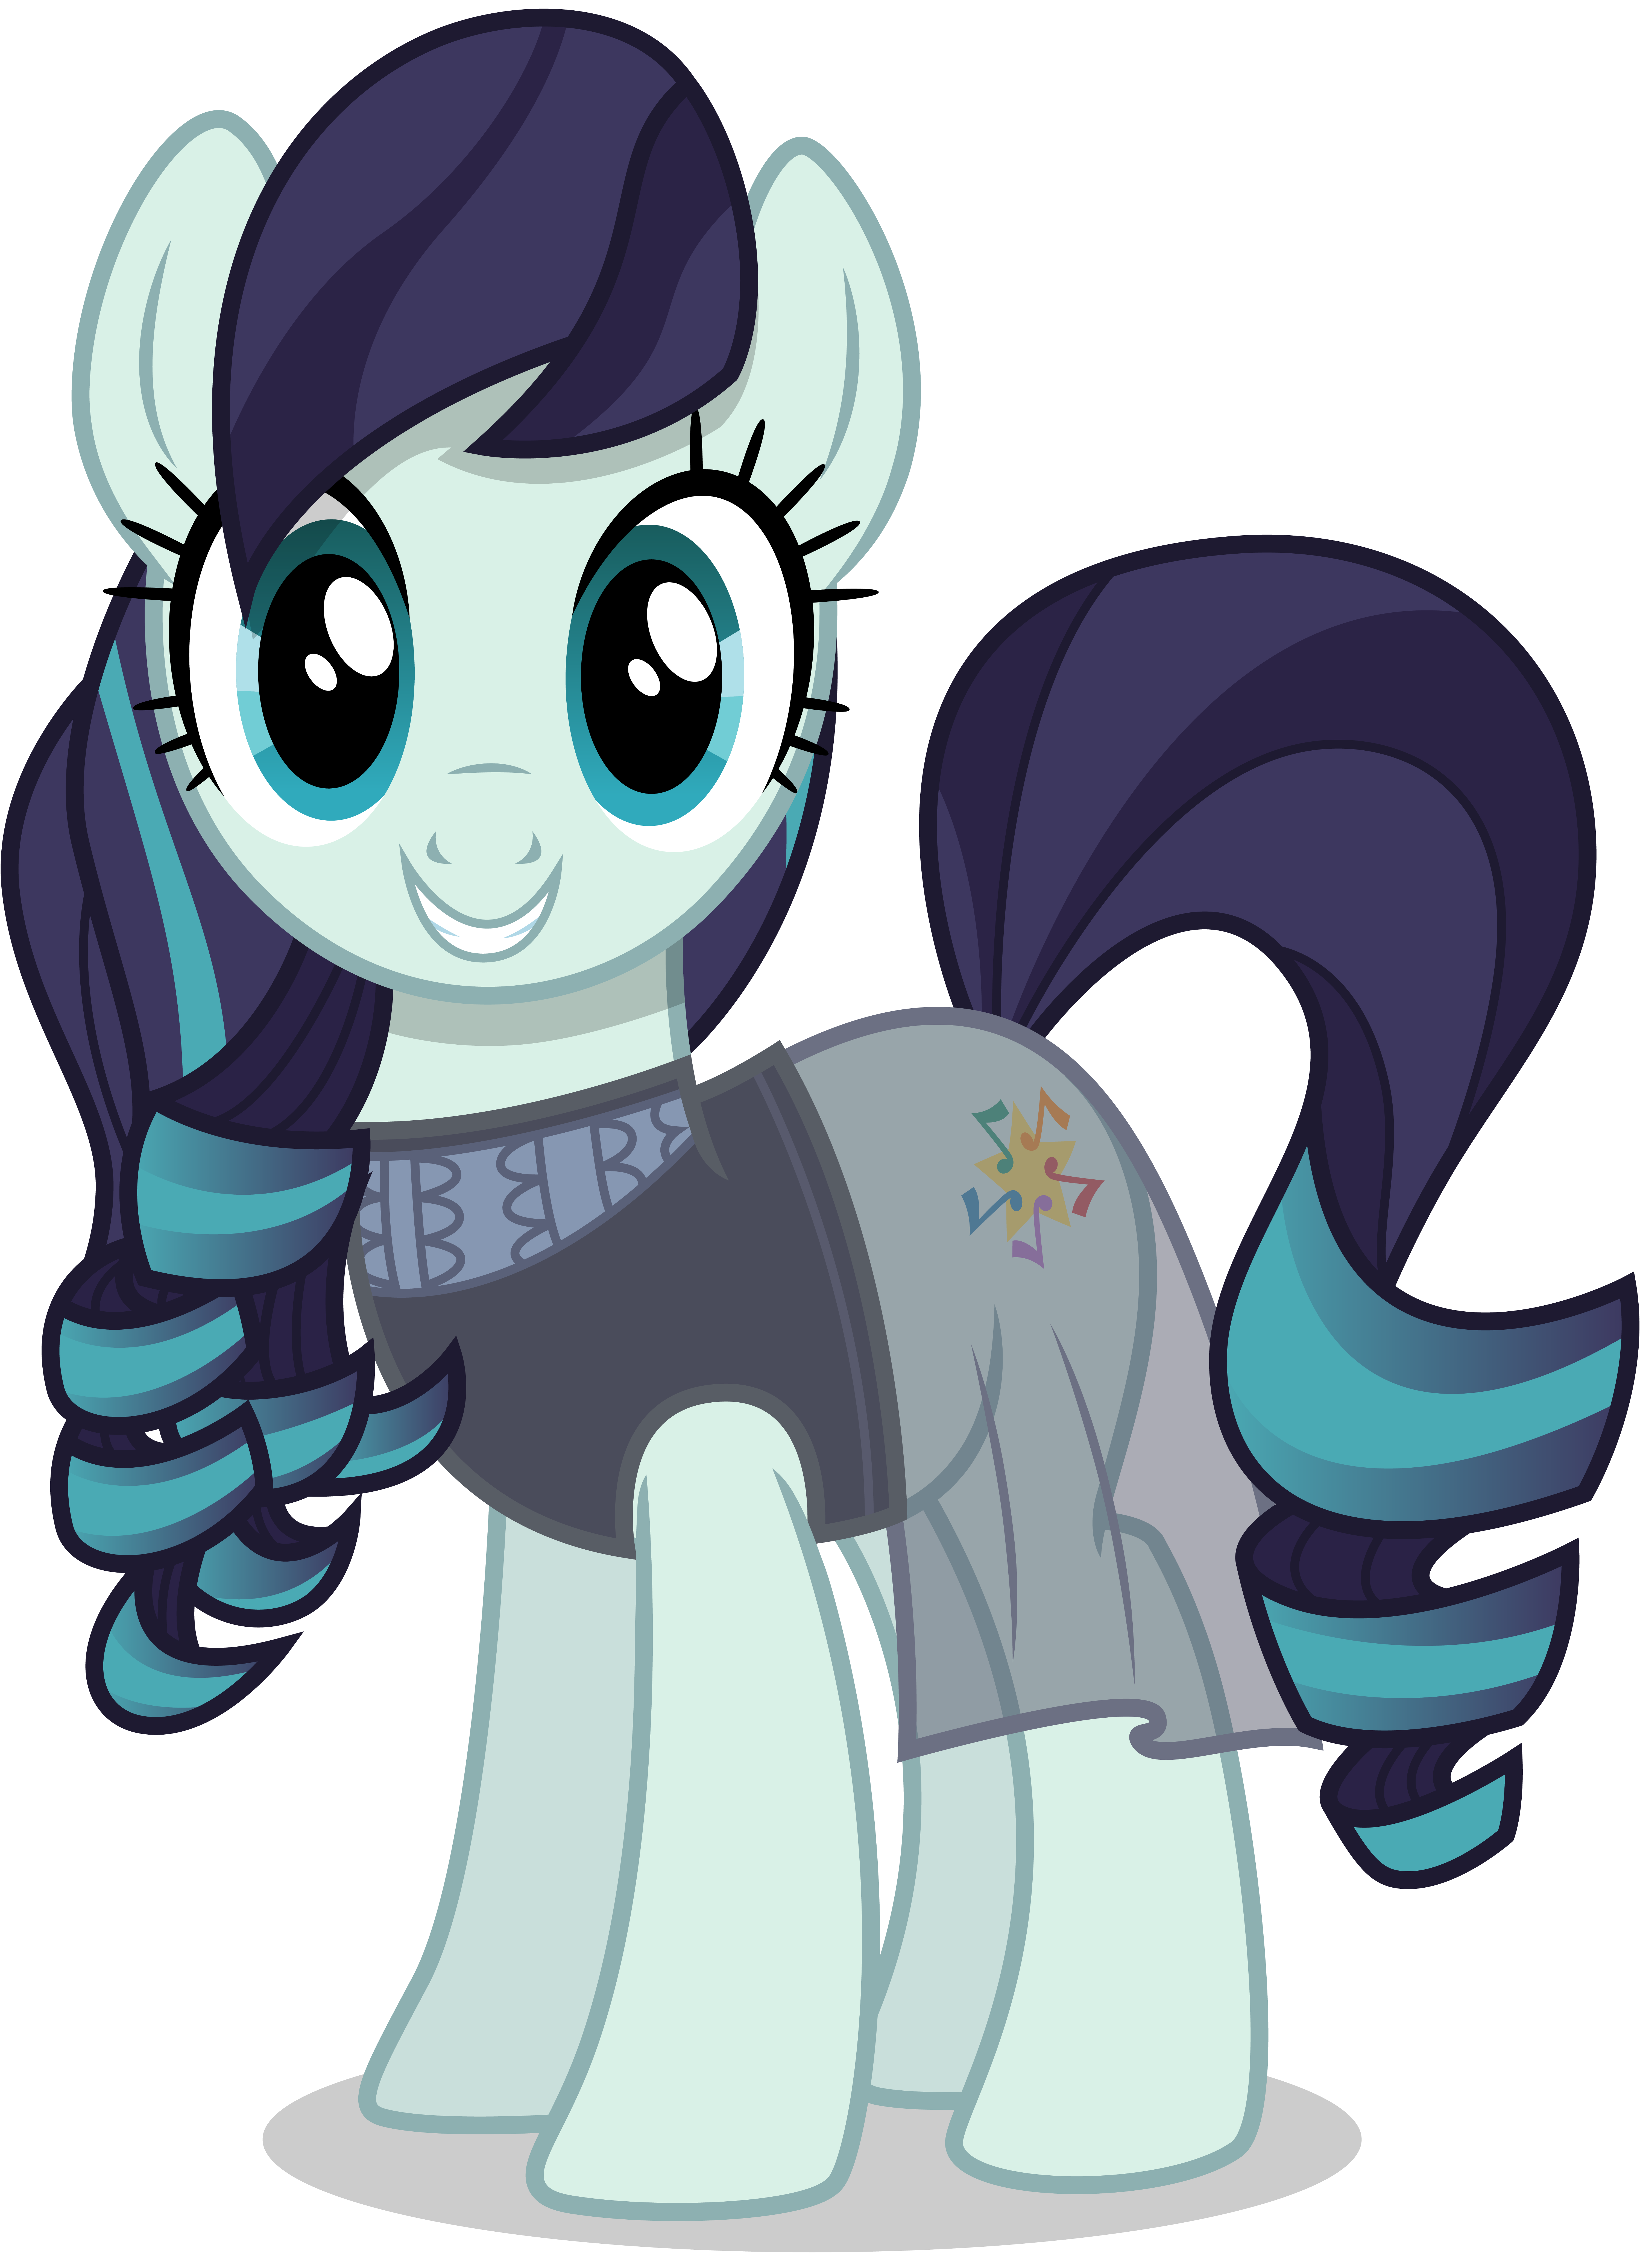 Countess Coloratura (Rara) - Delighted